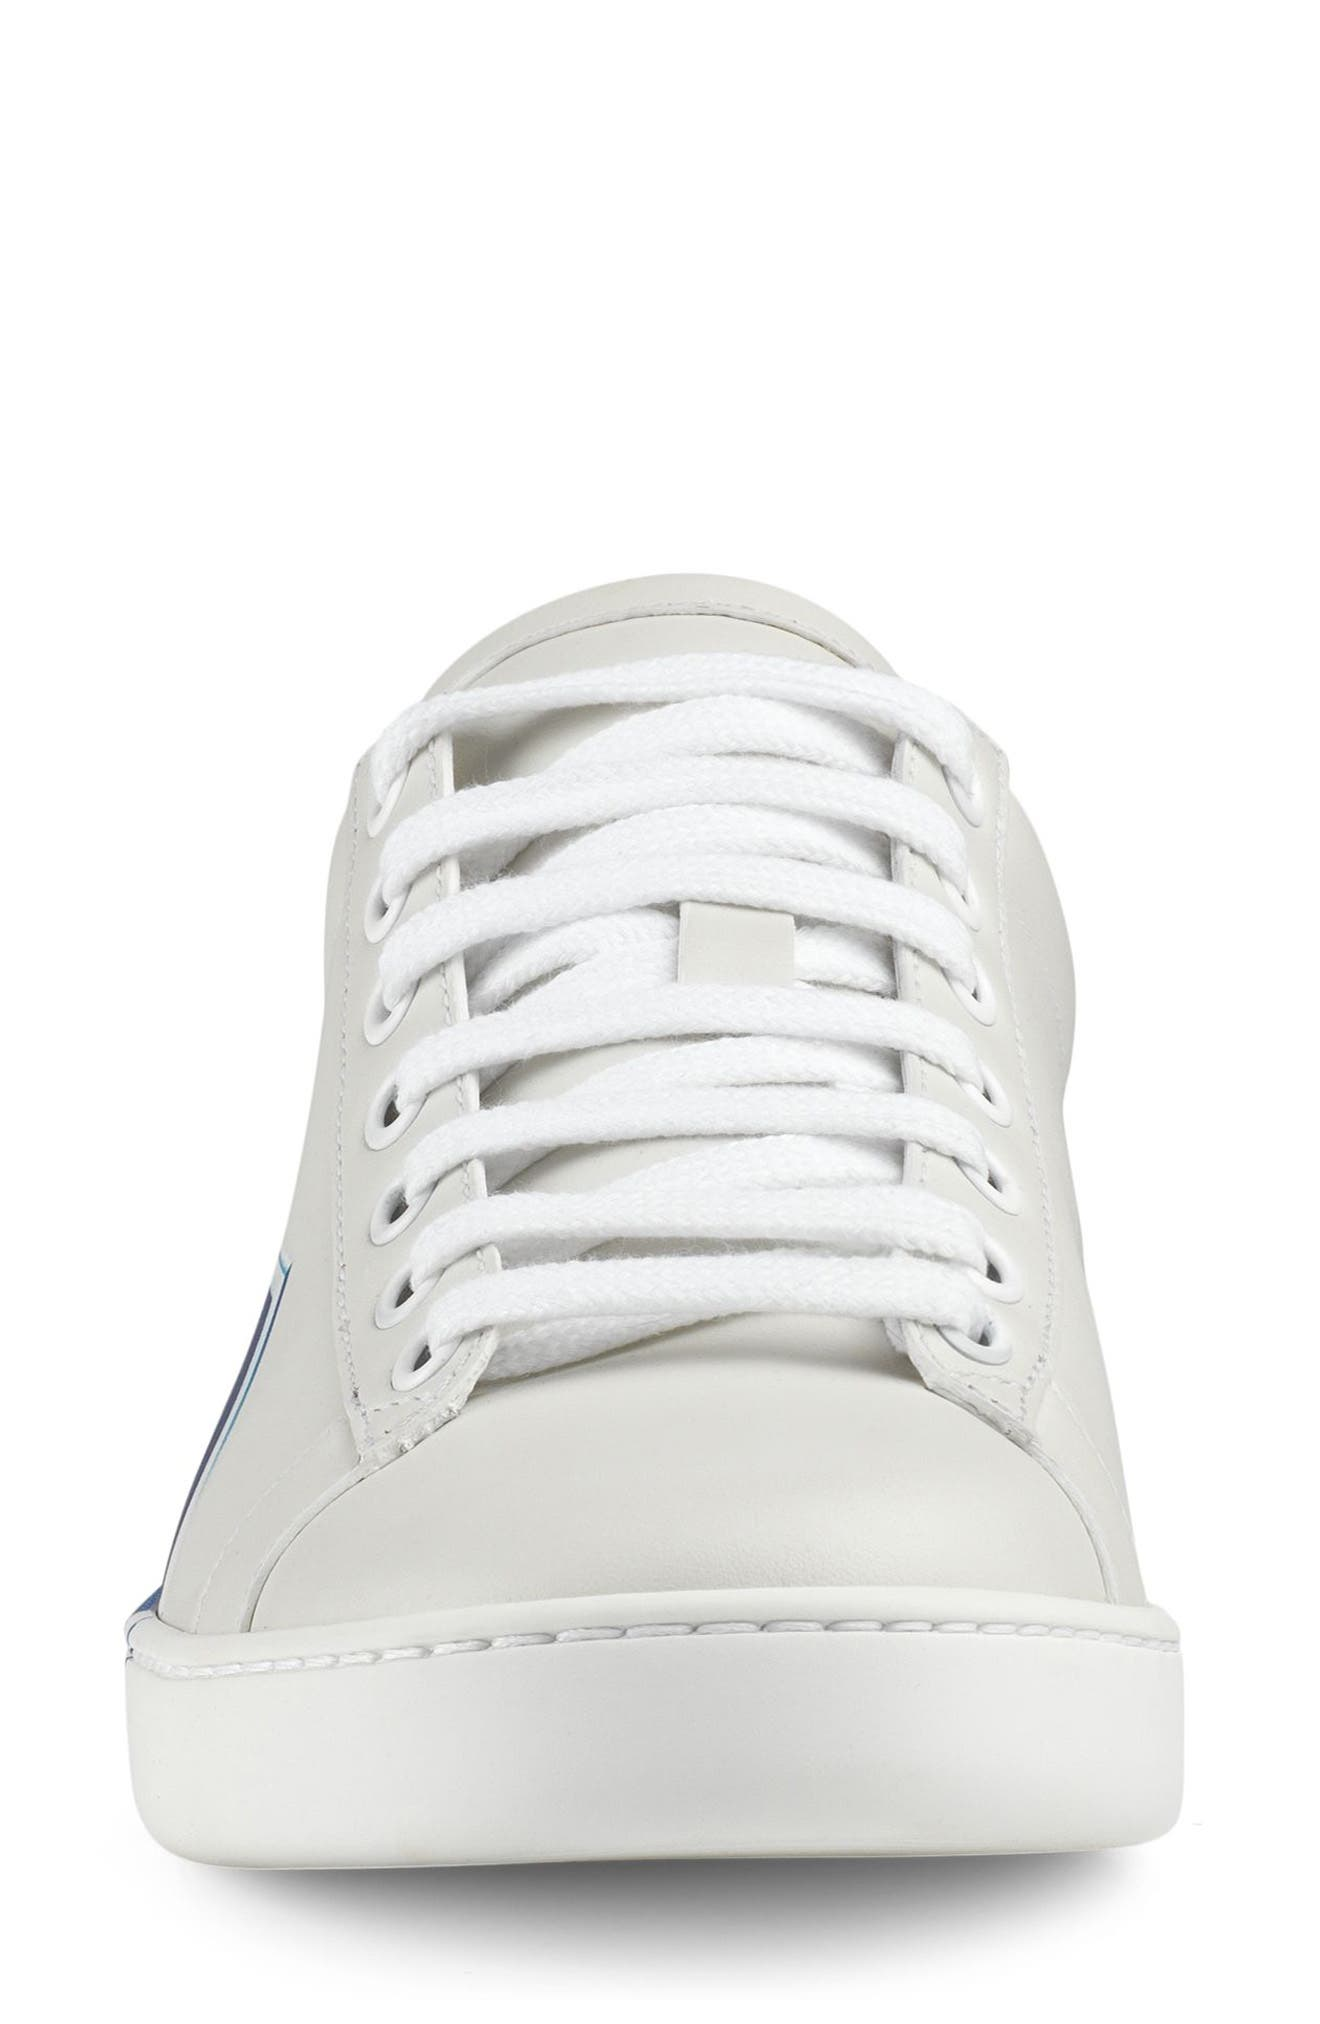 GUCCI,                             New Ace Loved Sneaker,                             Alternate thumbnail 3, color,                             WHITE